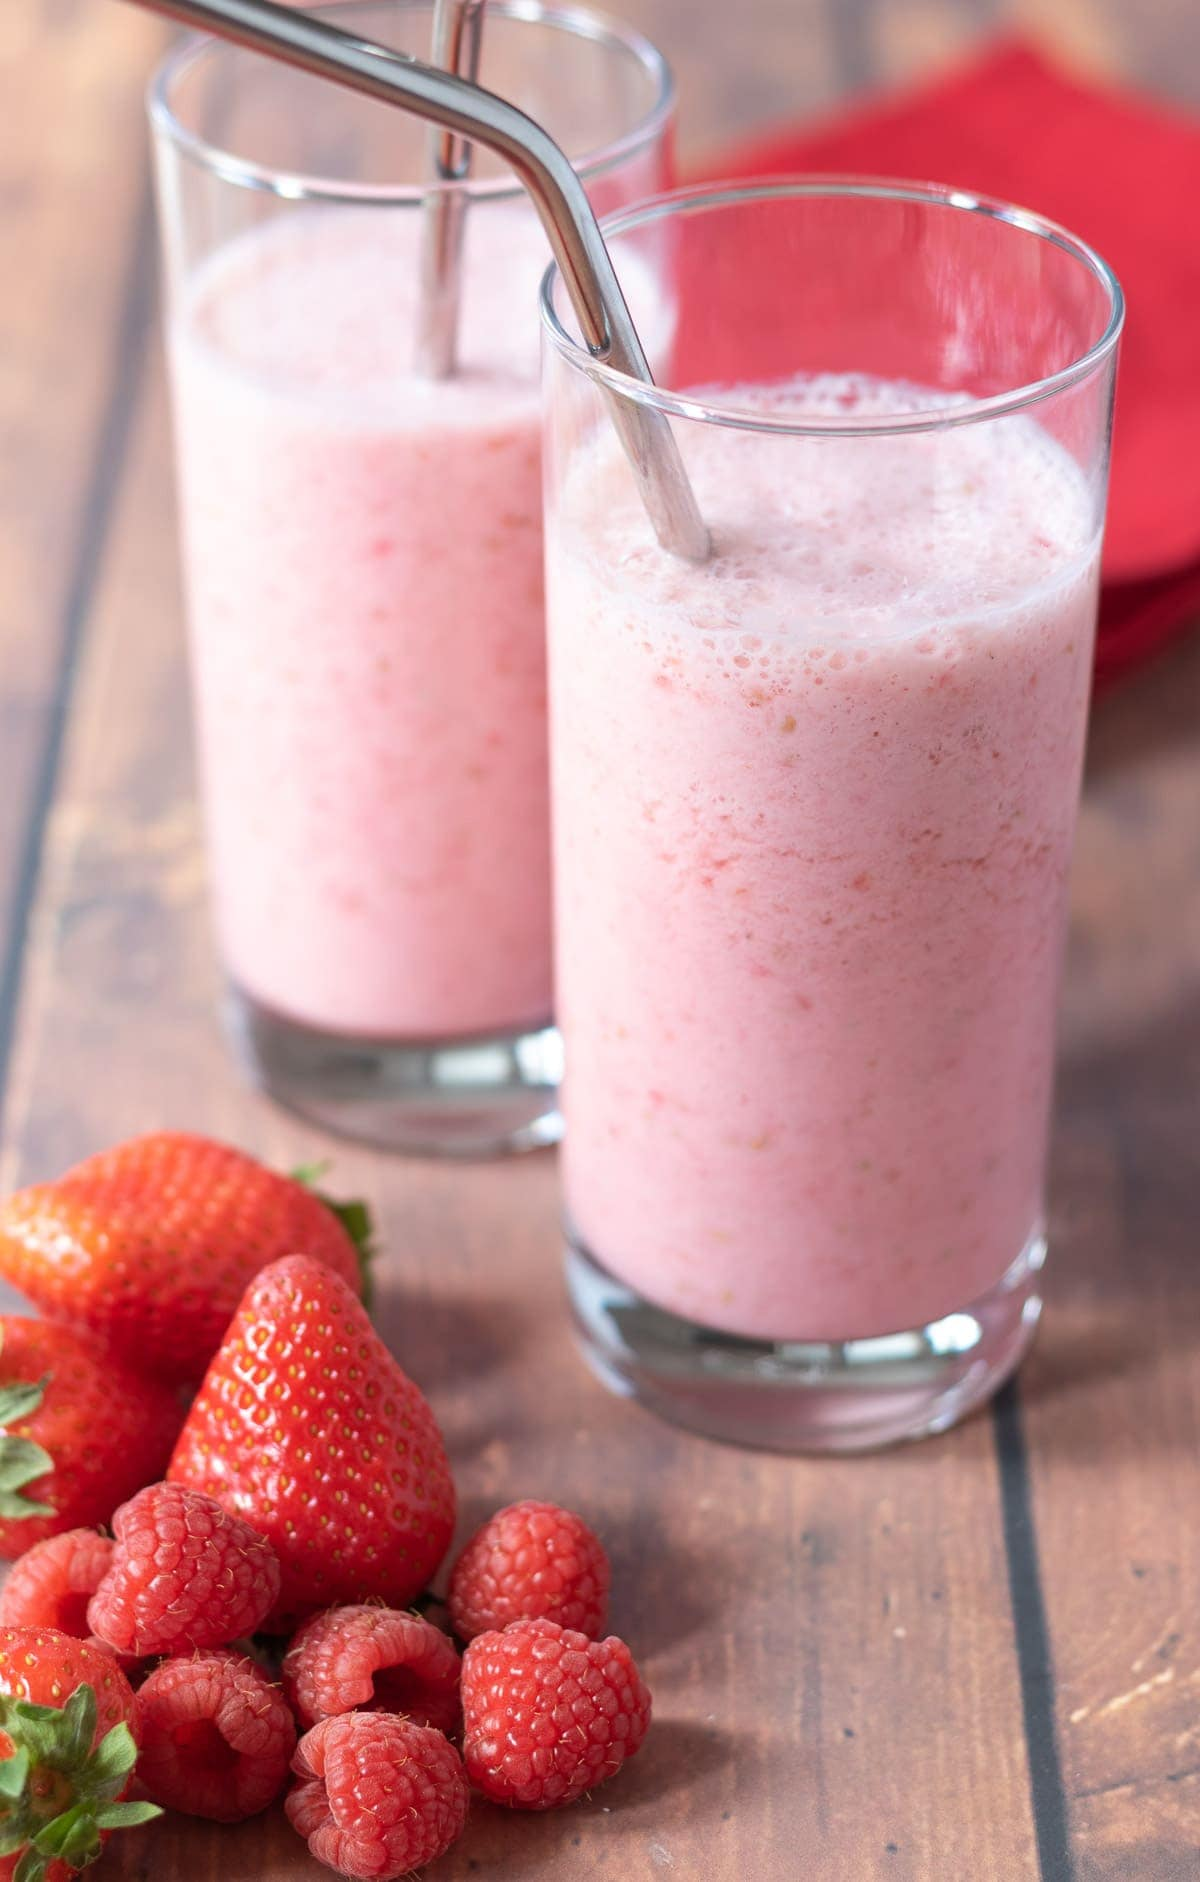 Two glasses of strawberry raspberry smoothie with silver drinking straws in. A pile of strawberries and raspberries at the front and a red serviette in the background.